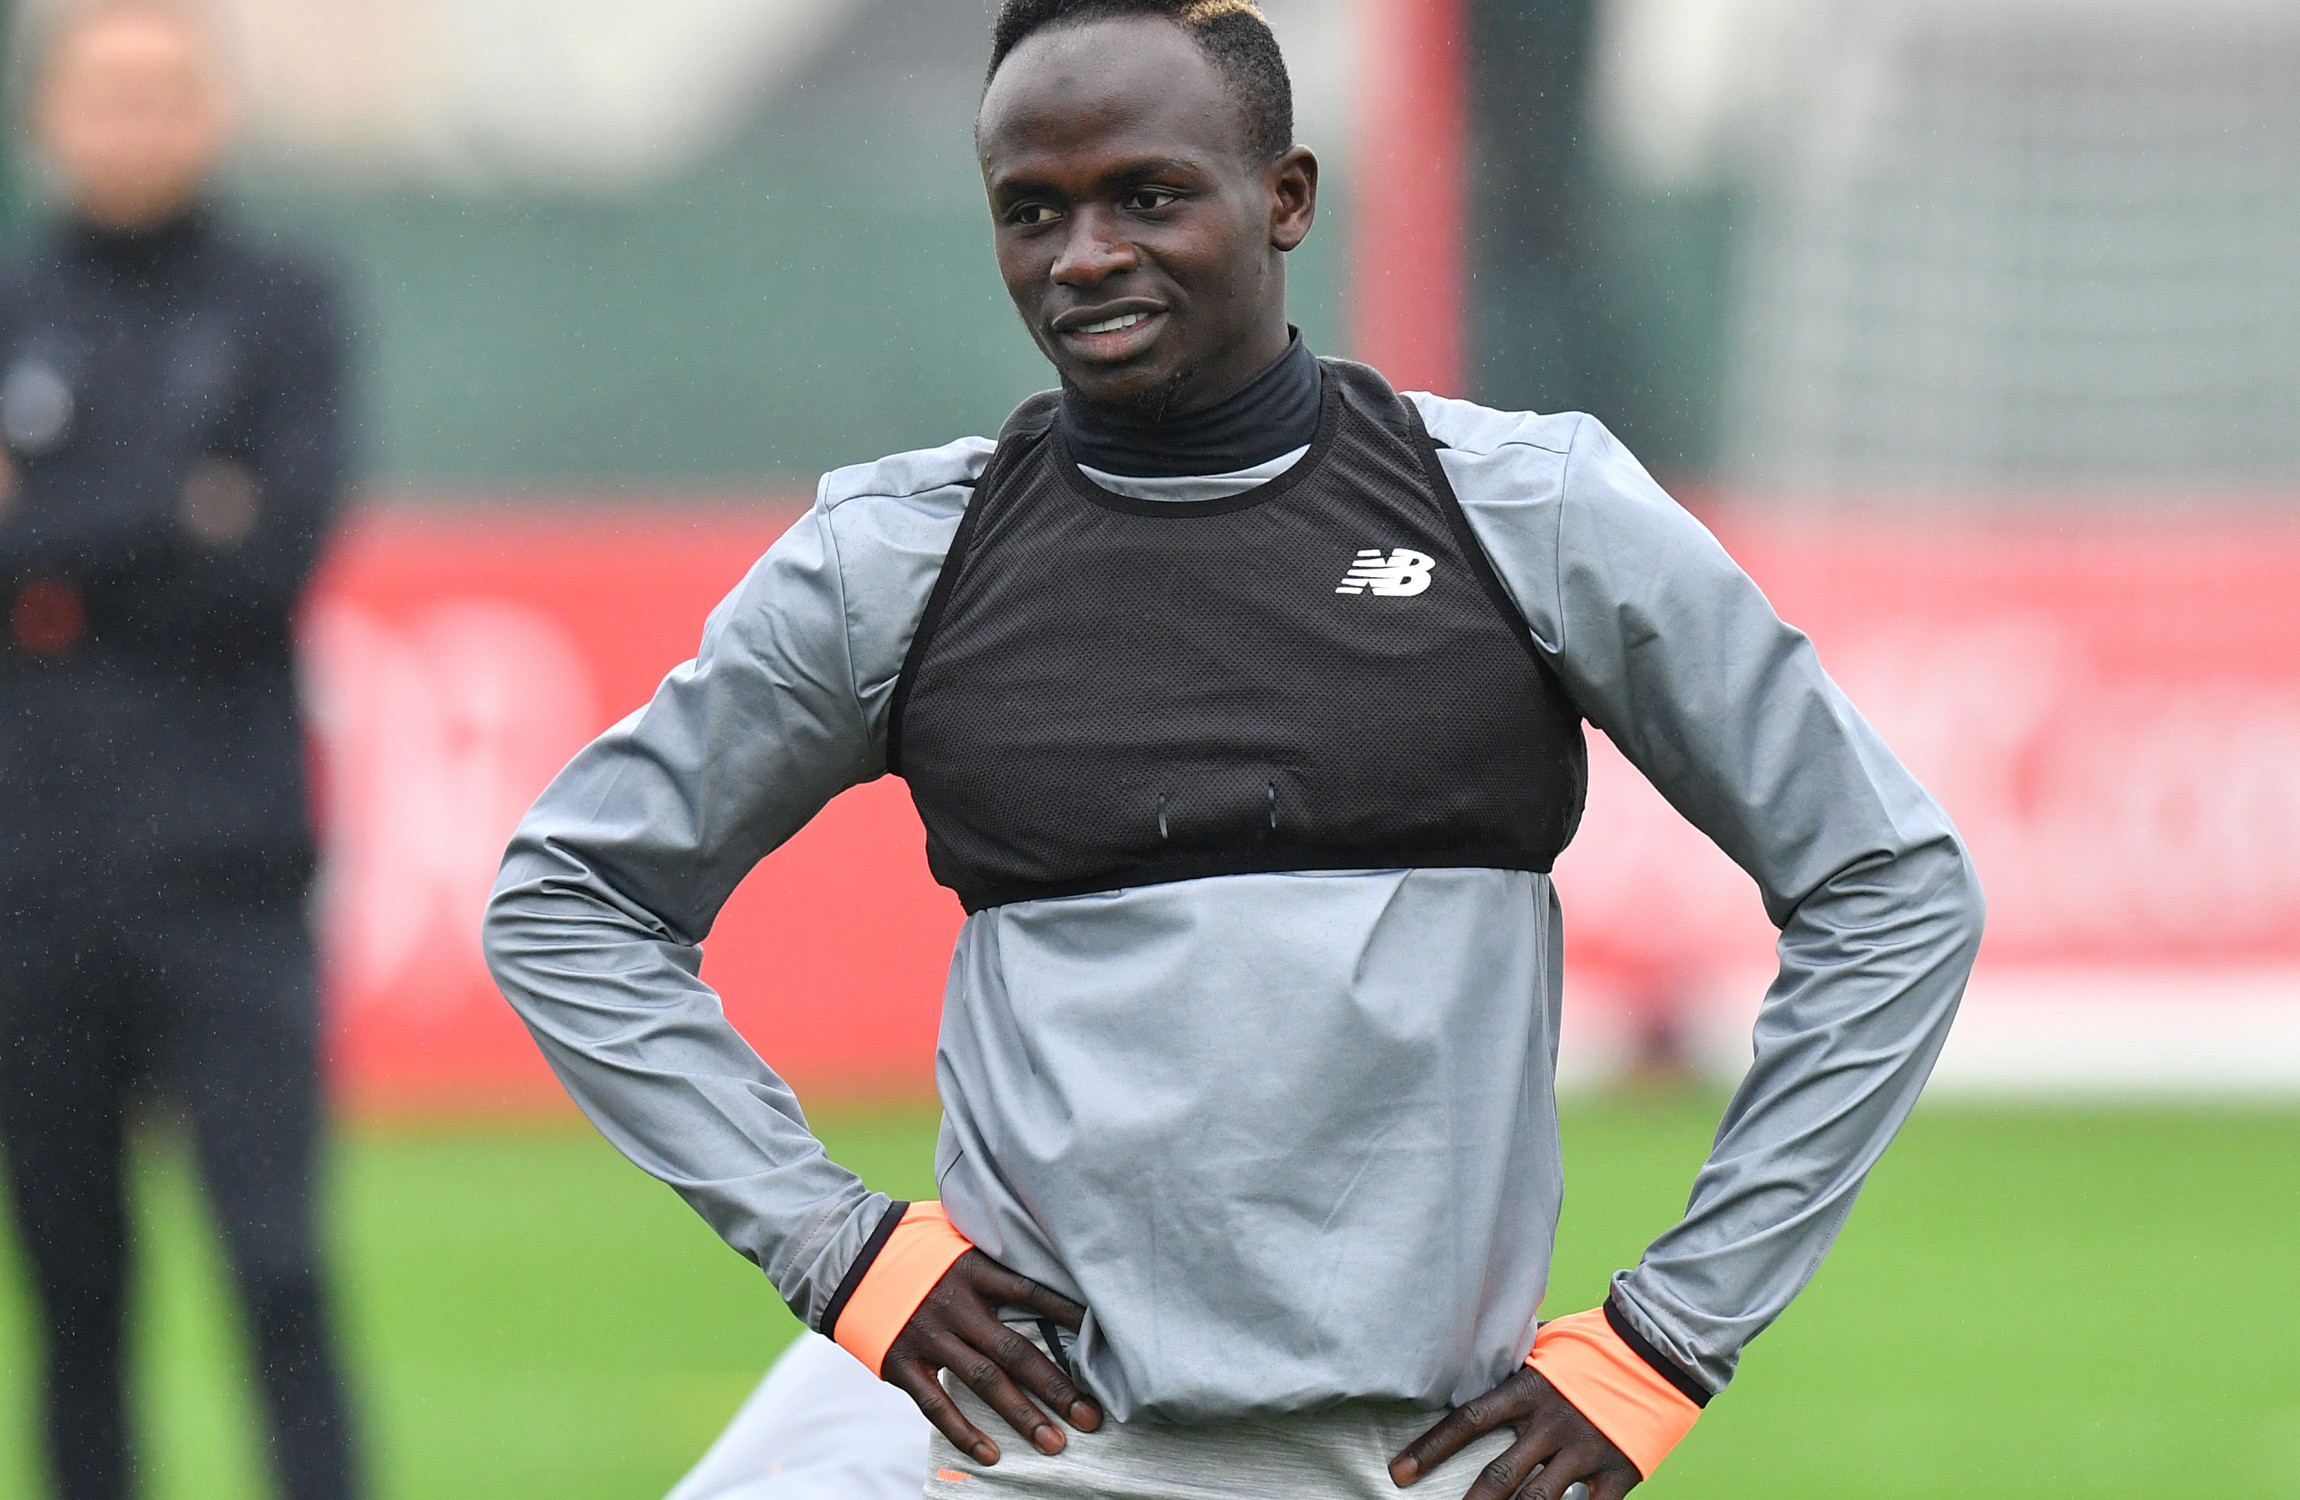 Liverpool's Sadio Mane ready to play for Senegal - Jurgen Klopp